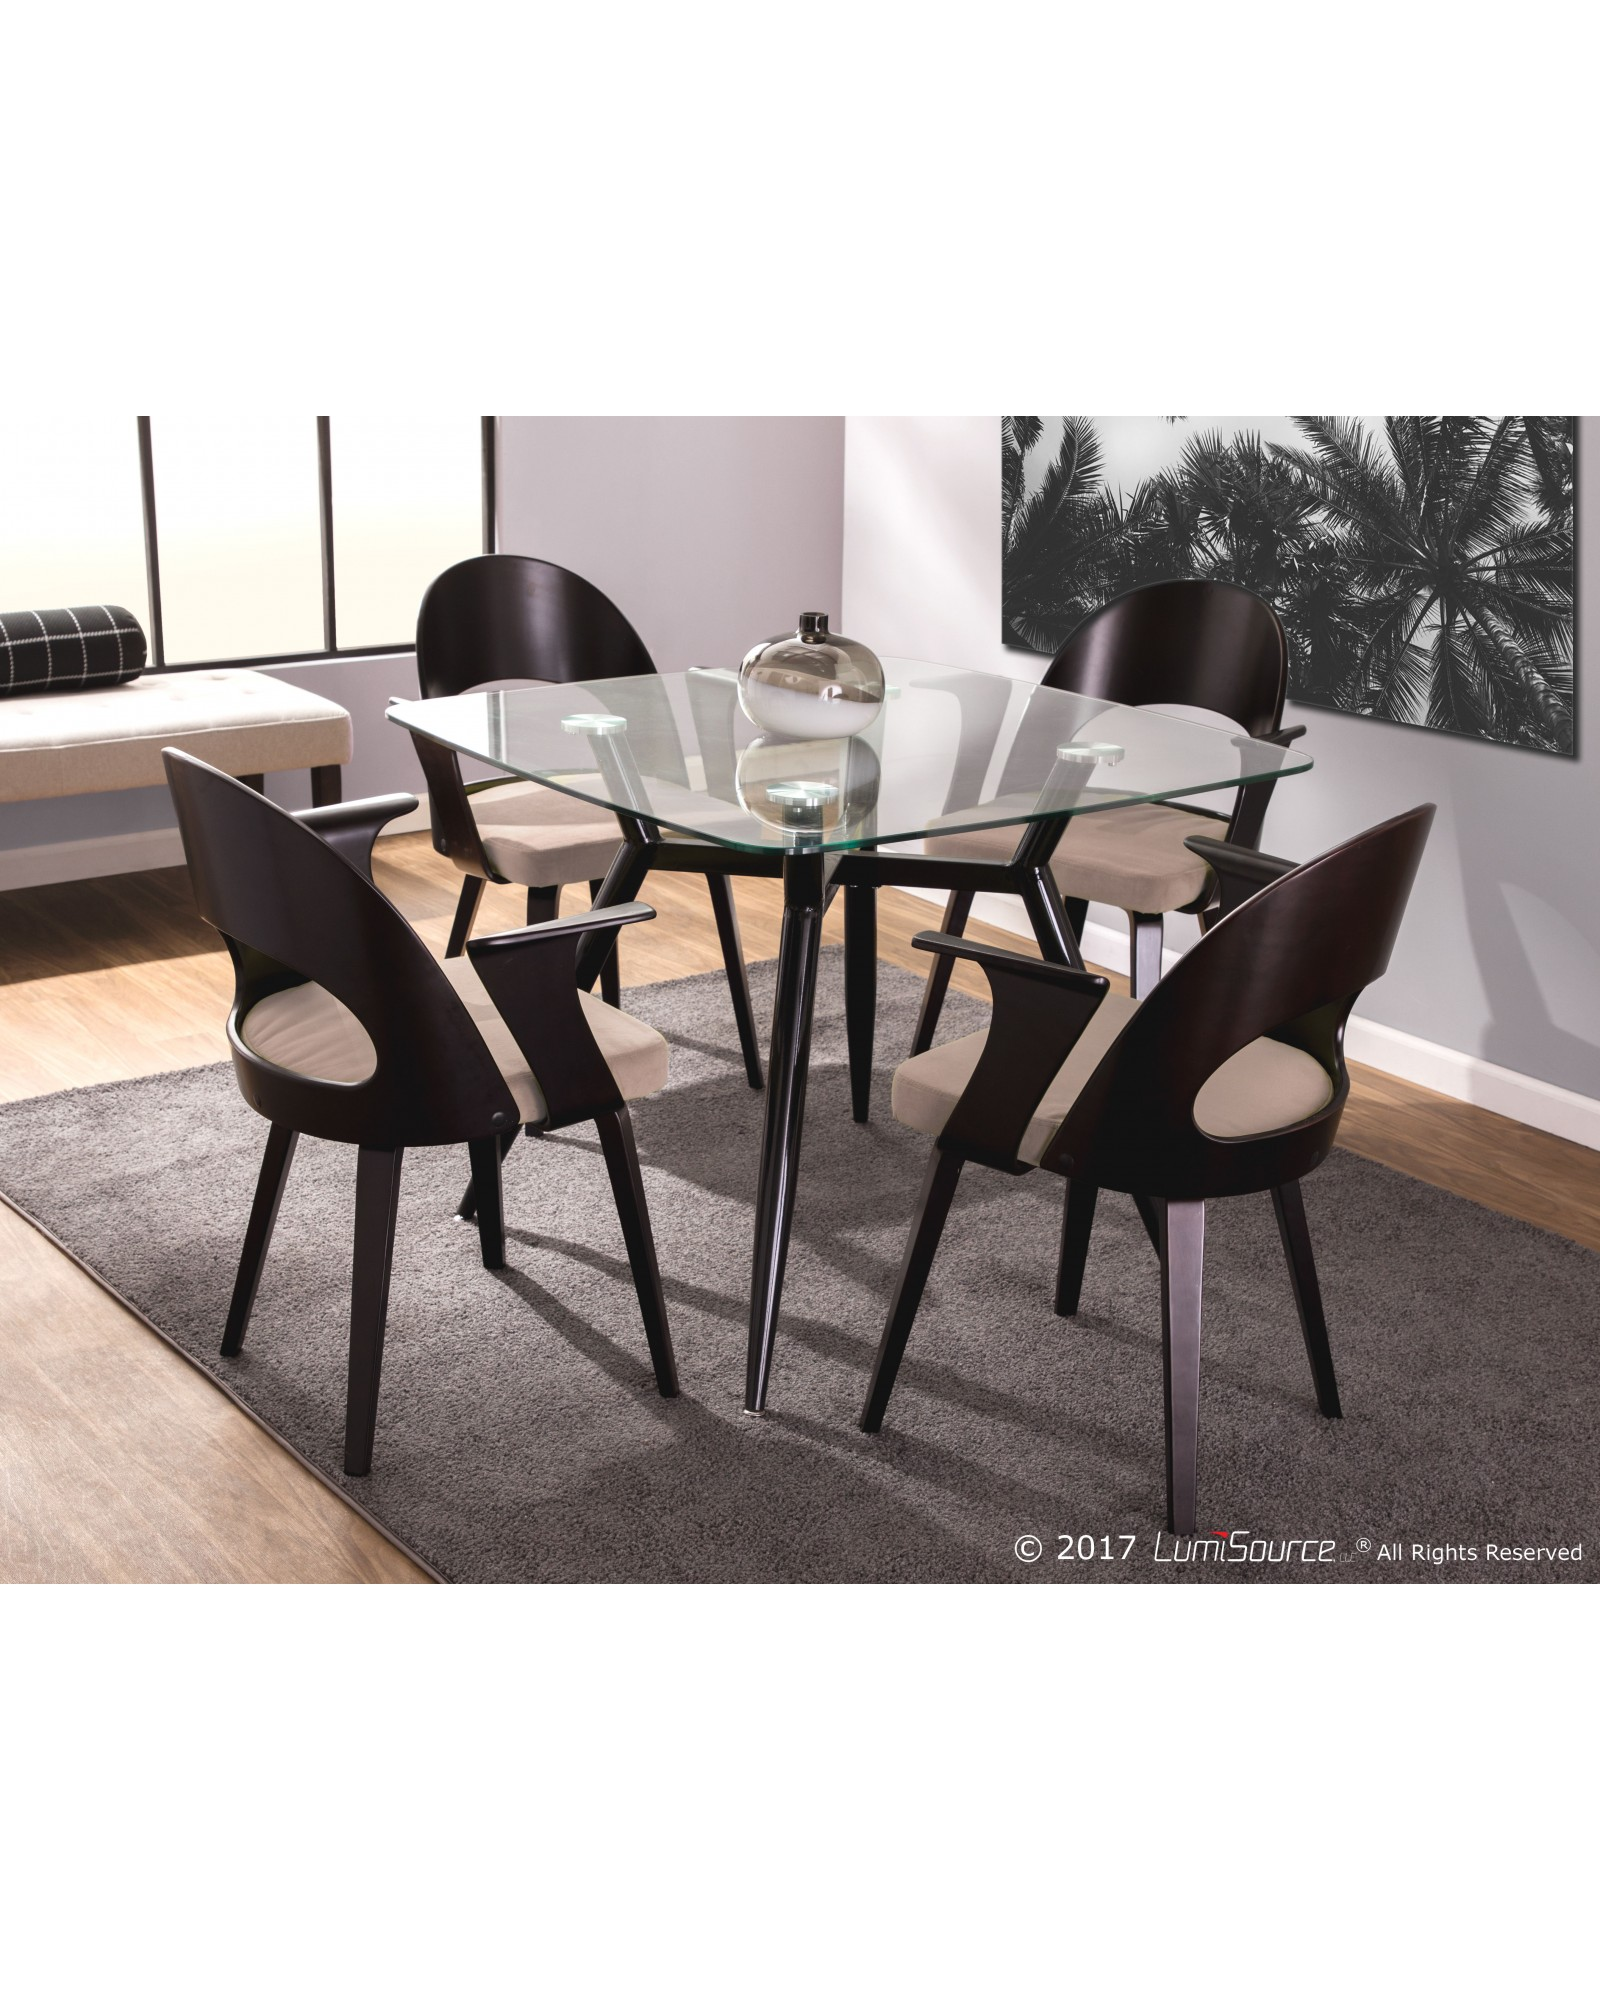 Clara Dining Table Clara Mid Century Modern Square Dining Table With Black Metal Legs And Clear Glass Top Huntington Beach Furniture